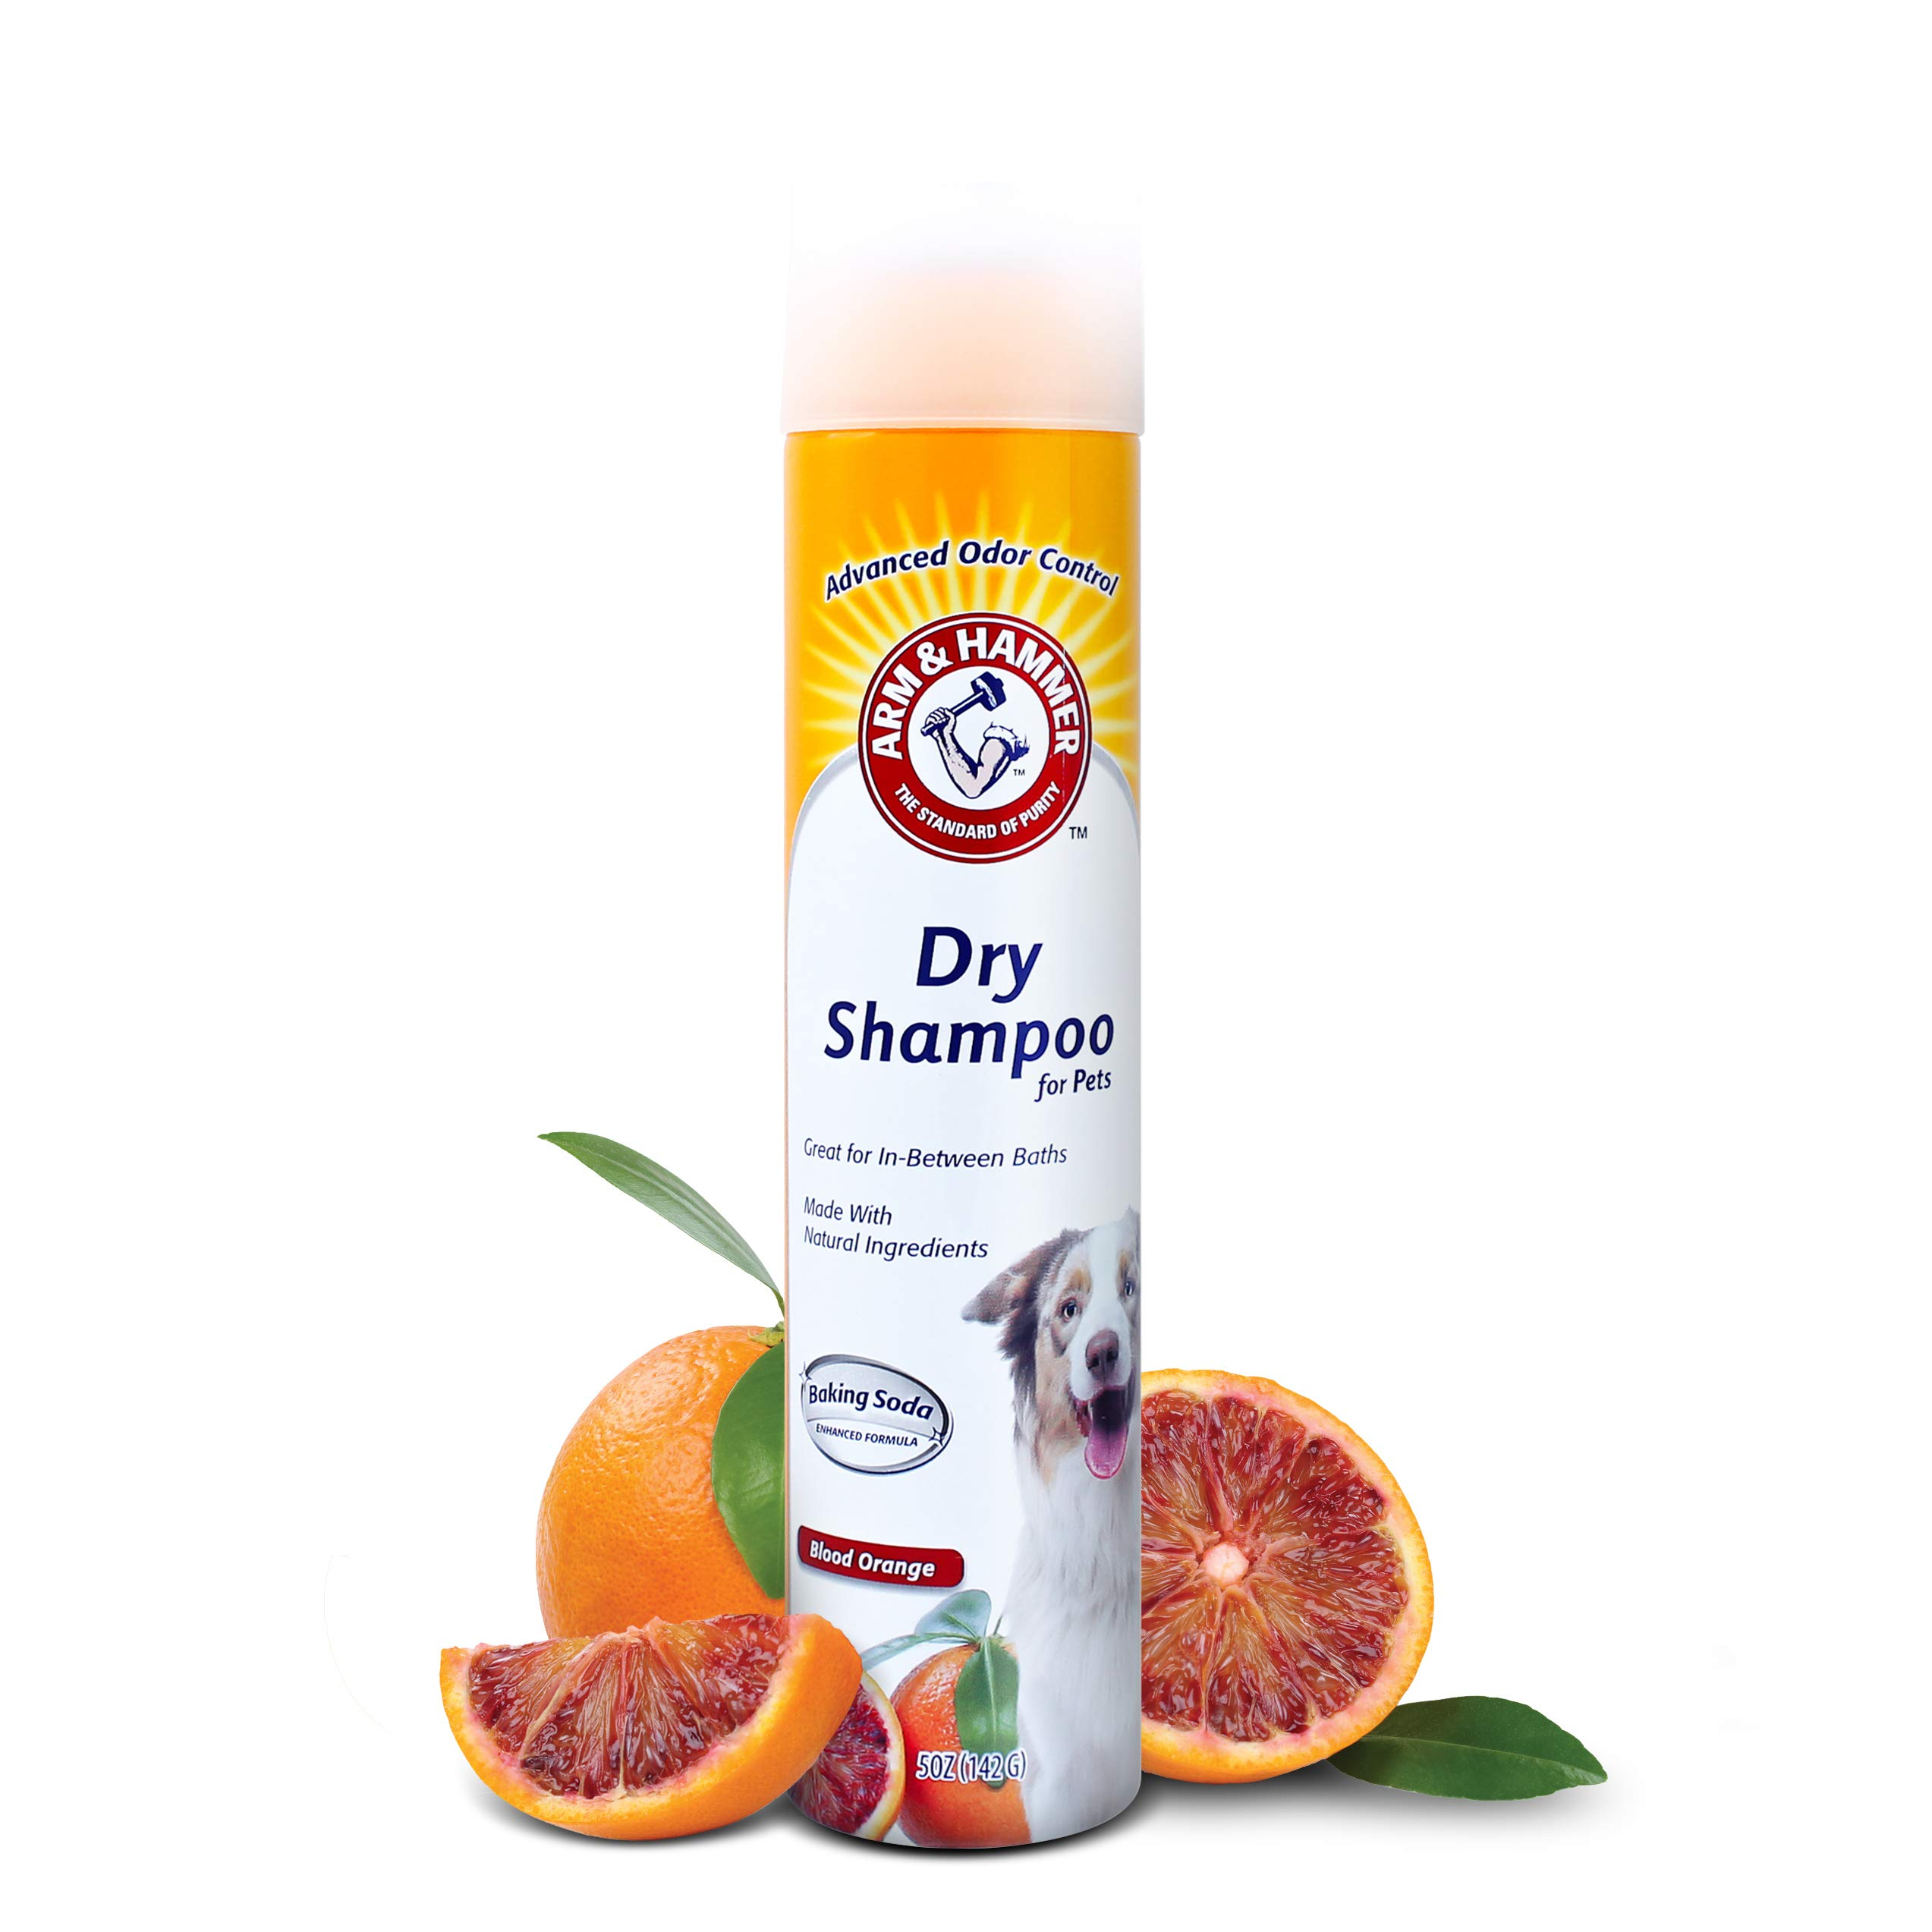 Arm & Hammer Dry Shampoo for Dogs | Dry Dog Shampoo Aerosol Spray Cleans & Deodorizes, Blood Orange Scent, Pack of 2